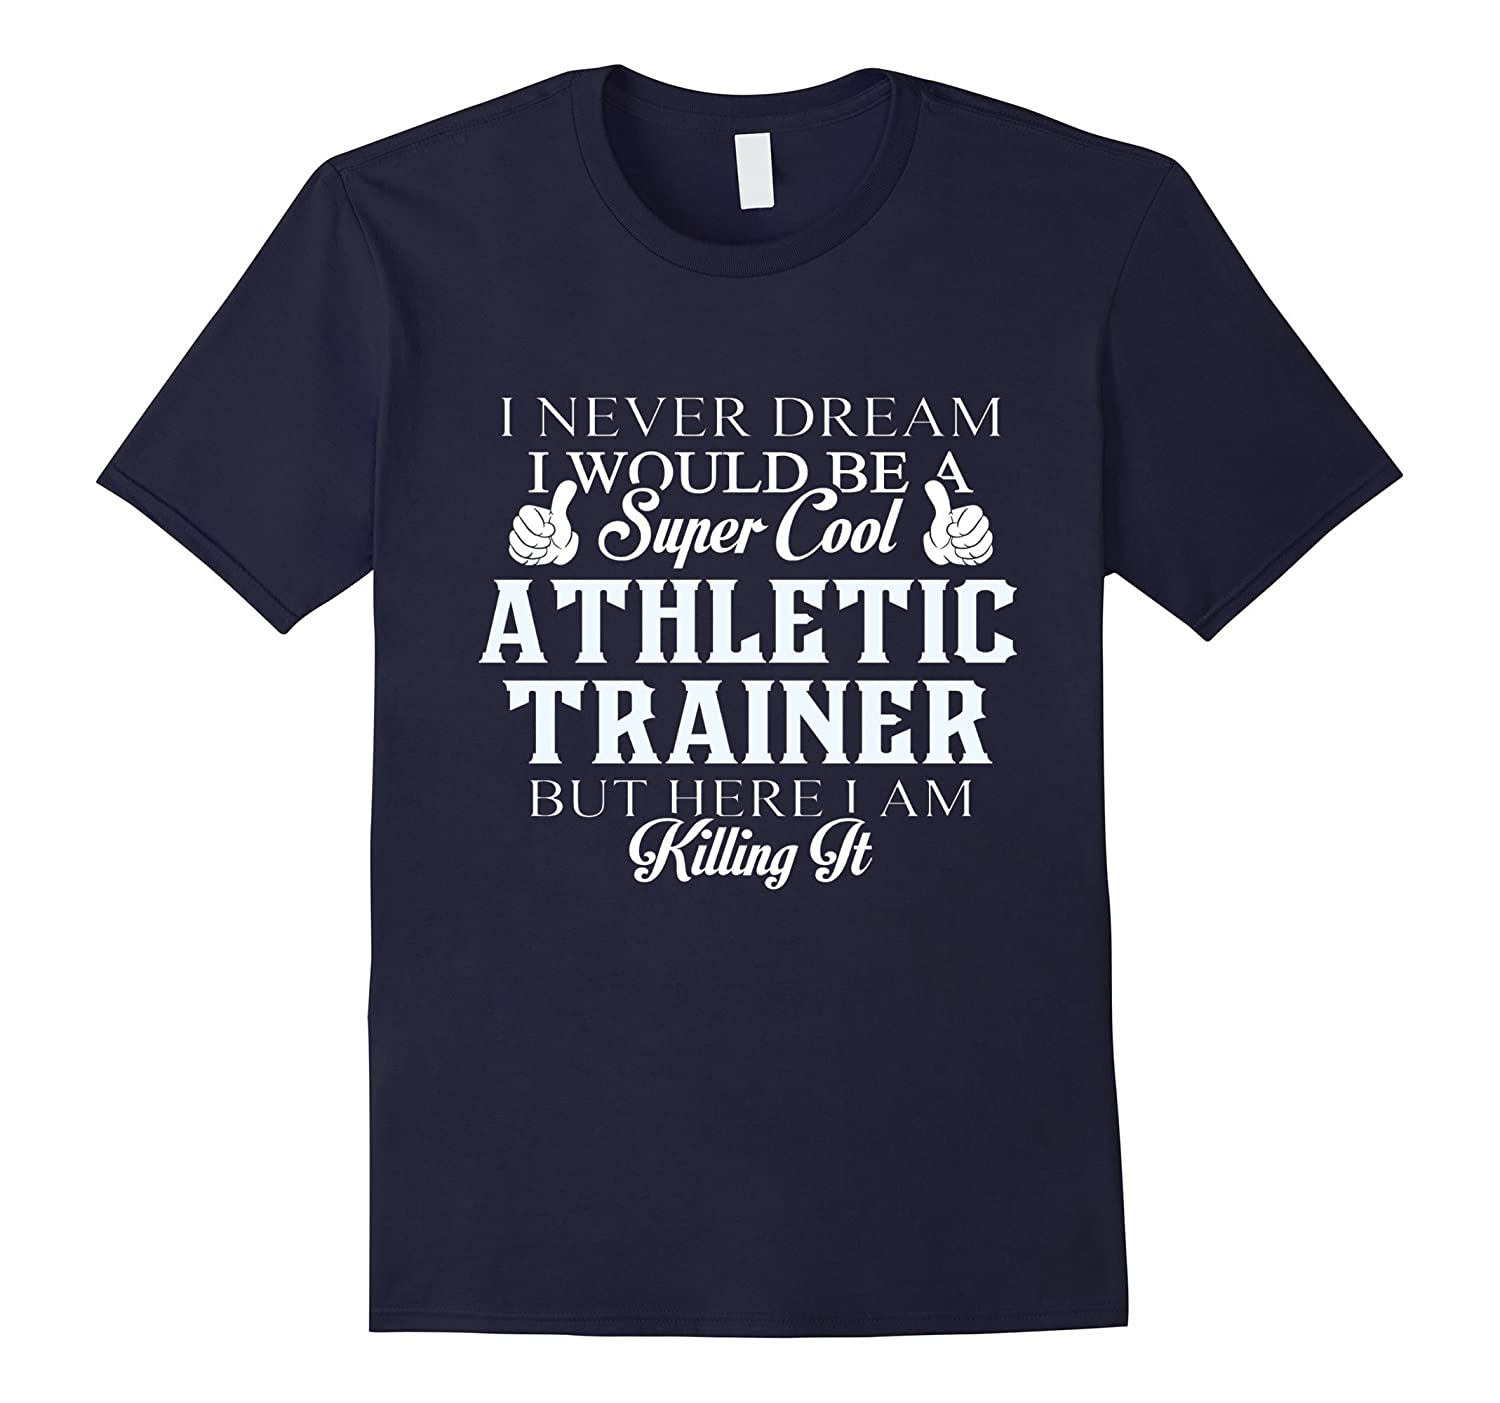 Dreamed would super cool Athletic trainer killing it-TH